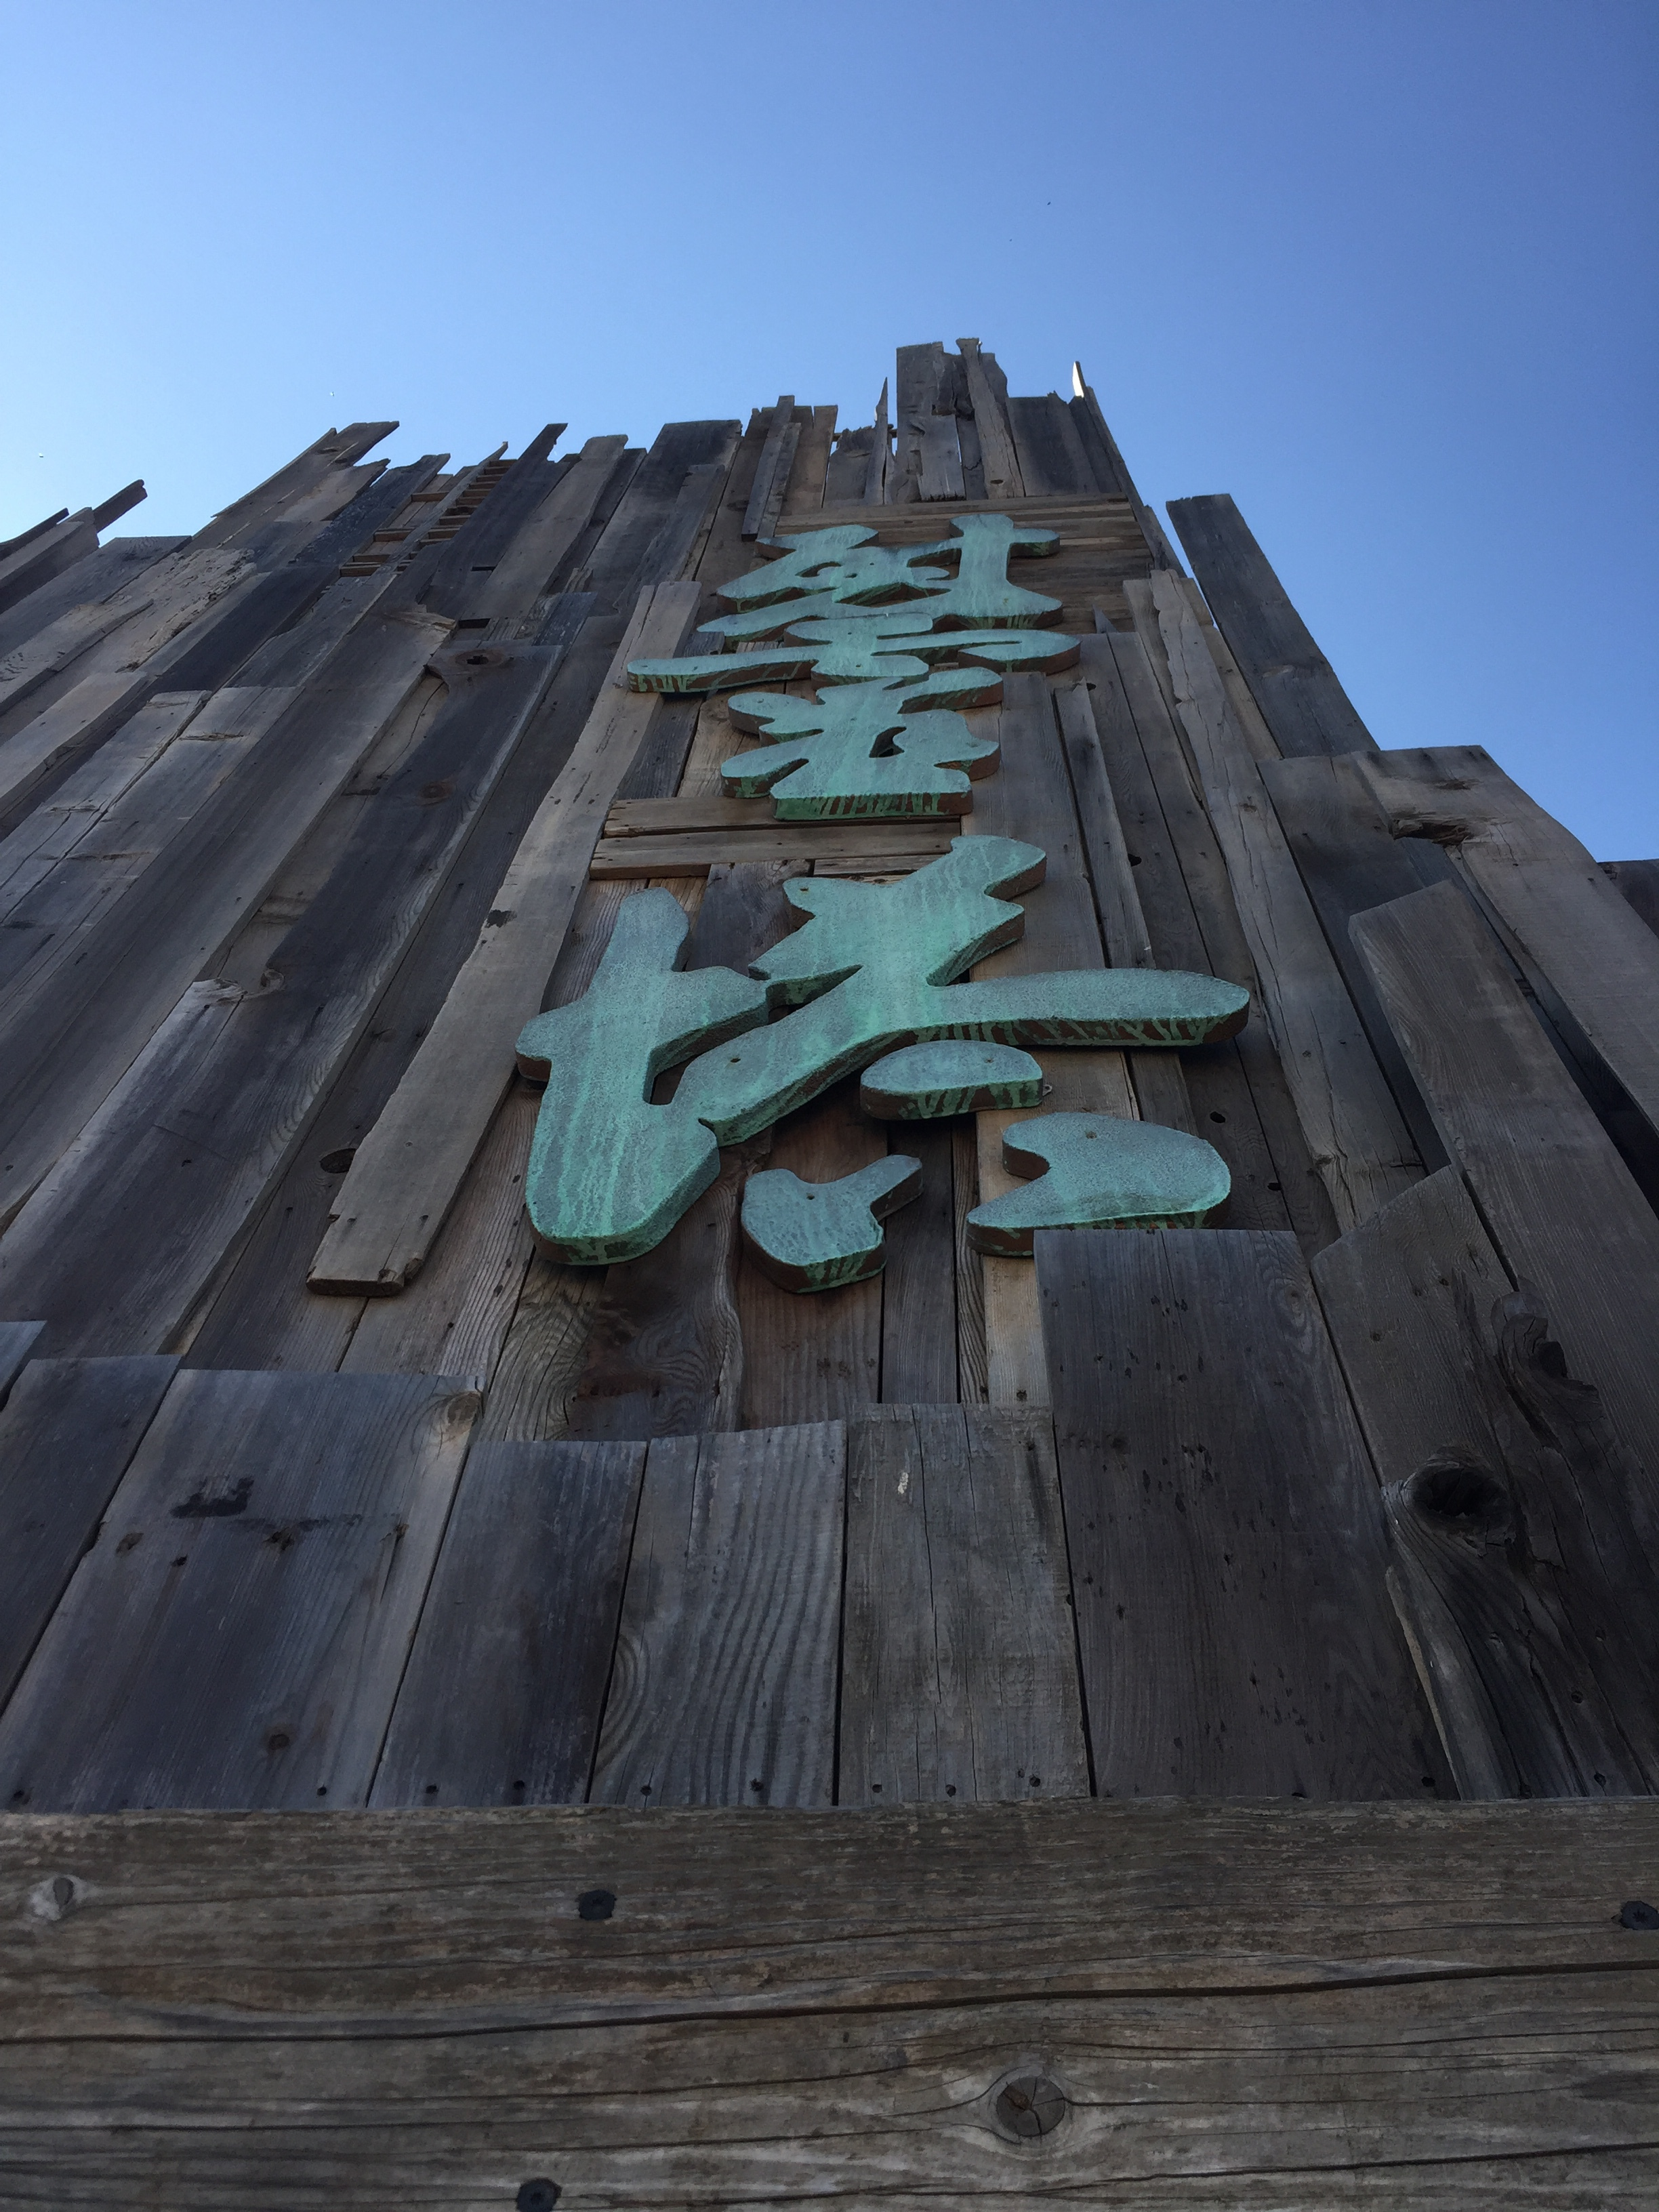 Simonian farms' soul-consoling tower built from poston barrack wood -